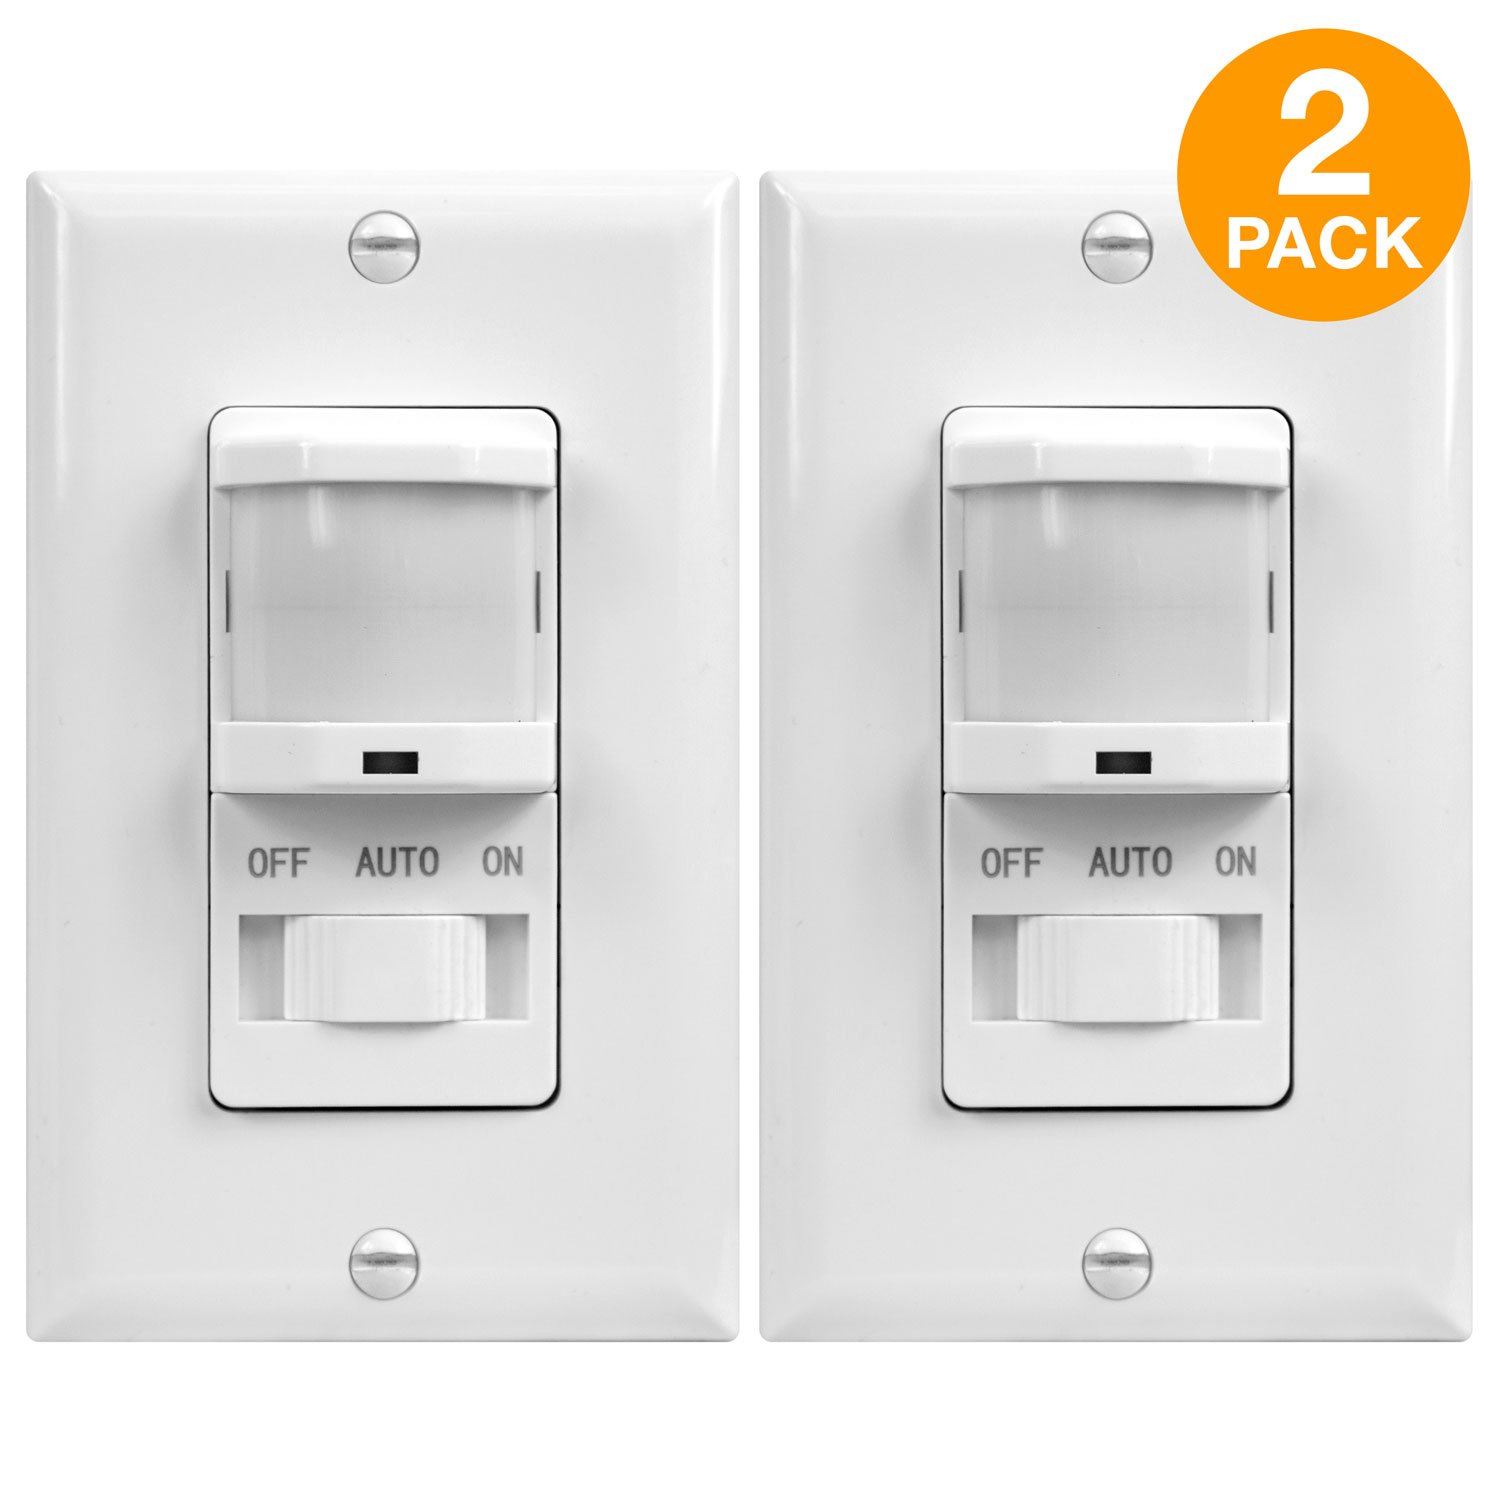 Switches 2018 Unique Outdoor Ac 220v Automatic Infrared Pir Motion Sensor Switch For Led Light Fine Craftsmanship